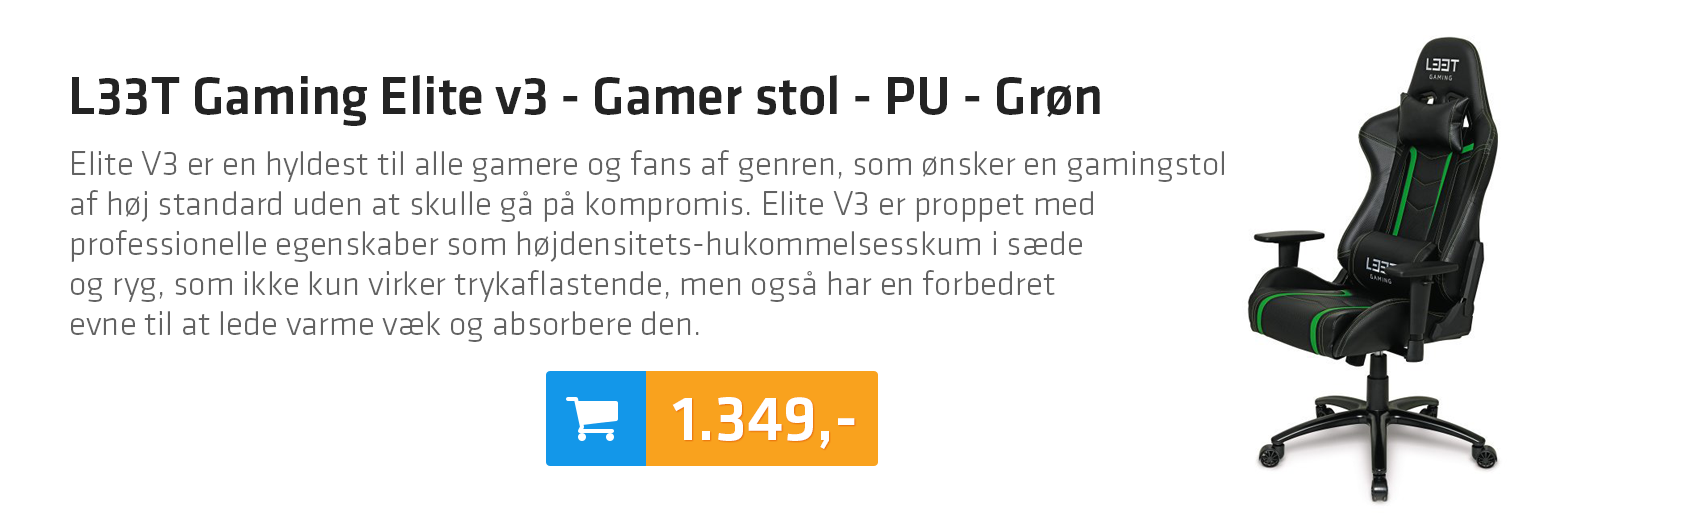 L33T Gaming Elite v3 - Gamer stol - PU - Grøn